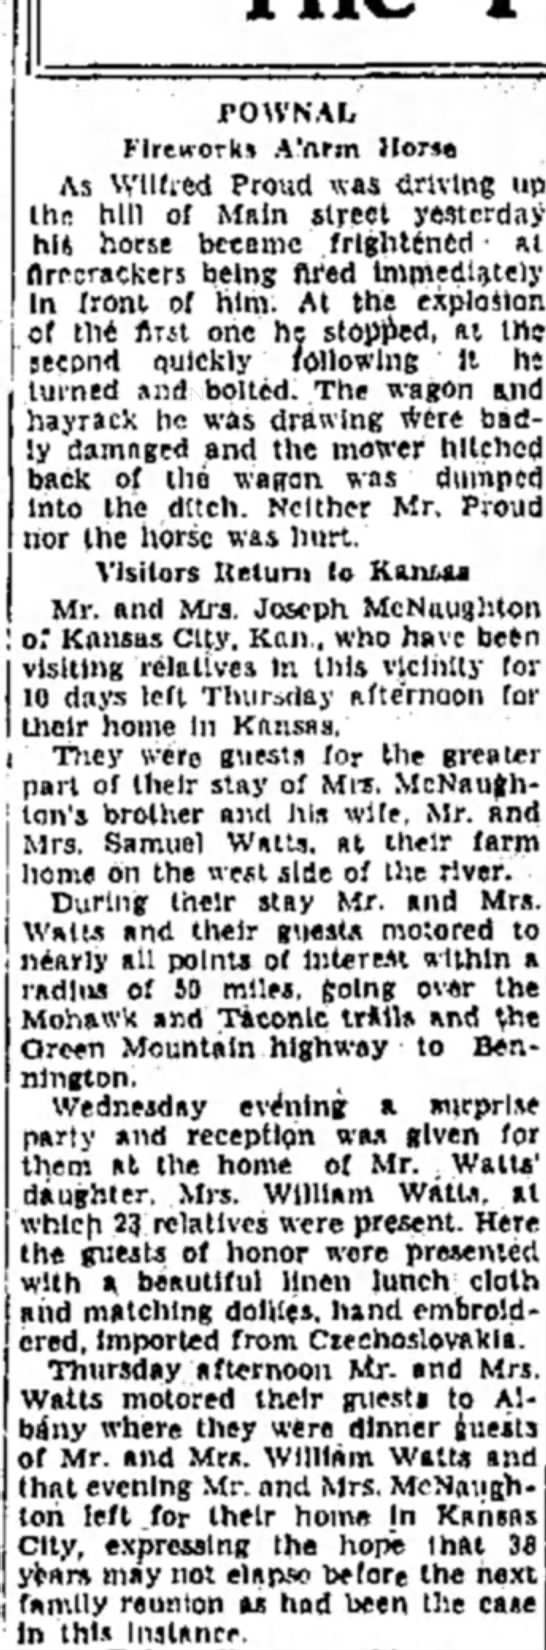 Sam Watts sister Tillie visits from Kansas City  July 3, 1934 - FOWNAL Fireworks A'ftrm Horn As Wilfred Proud...